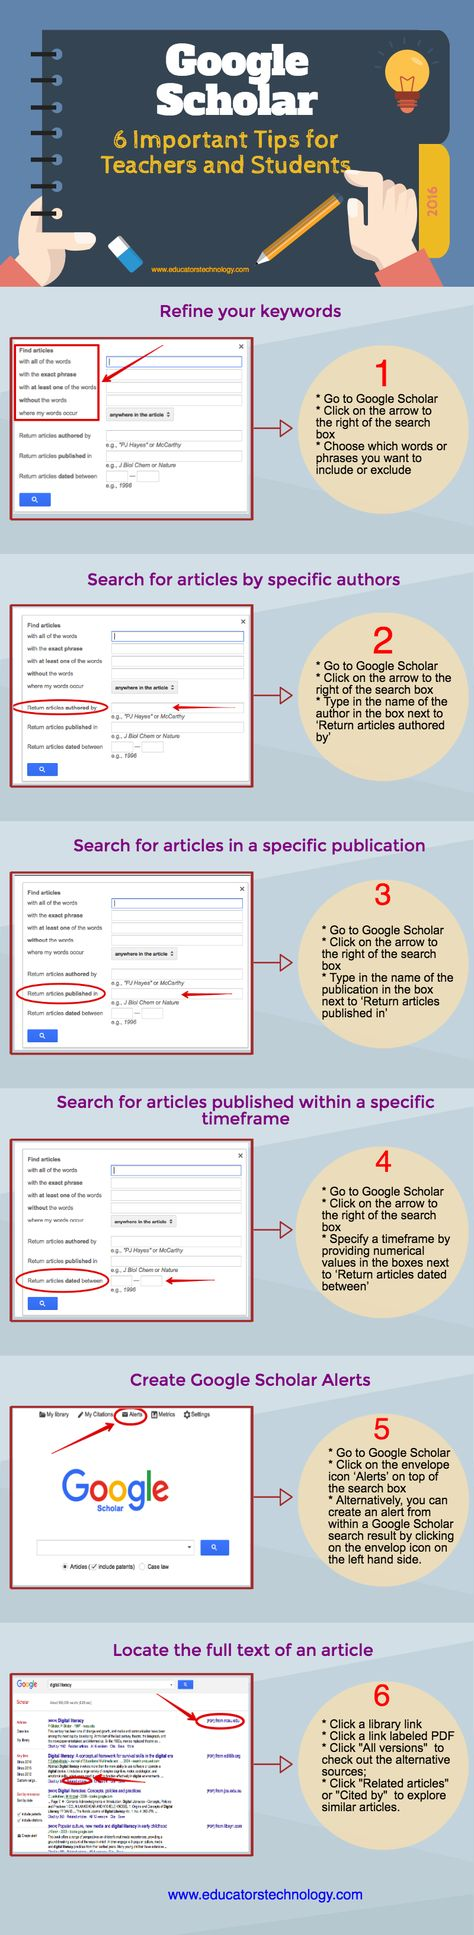 6 Important Google Scholar Tips for Teachers and Students (Poster)